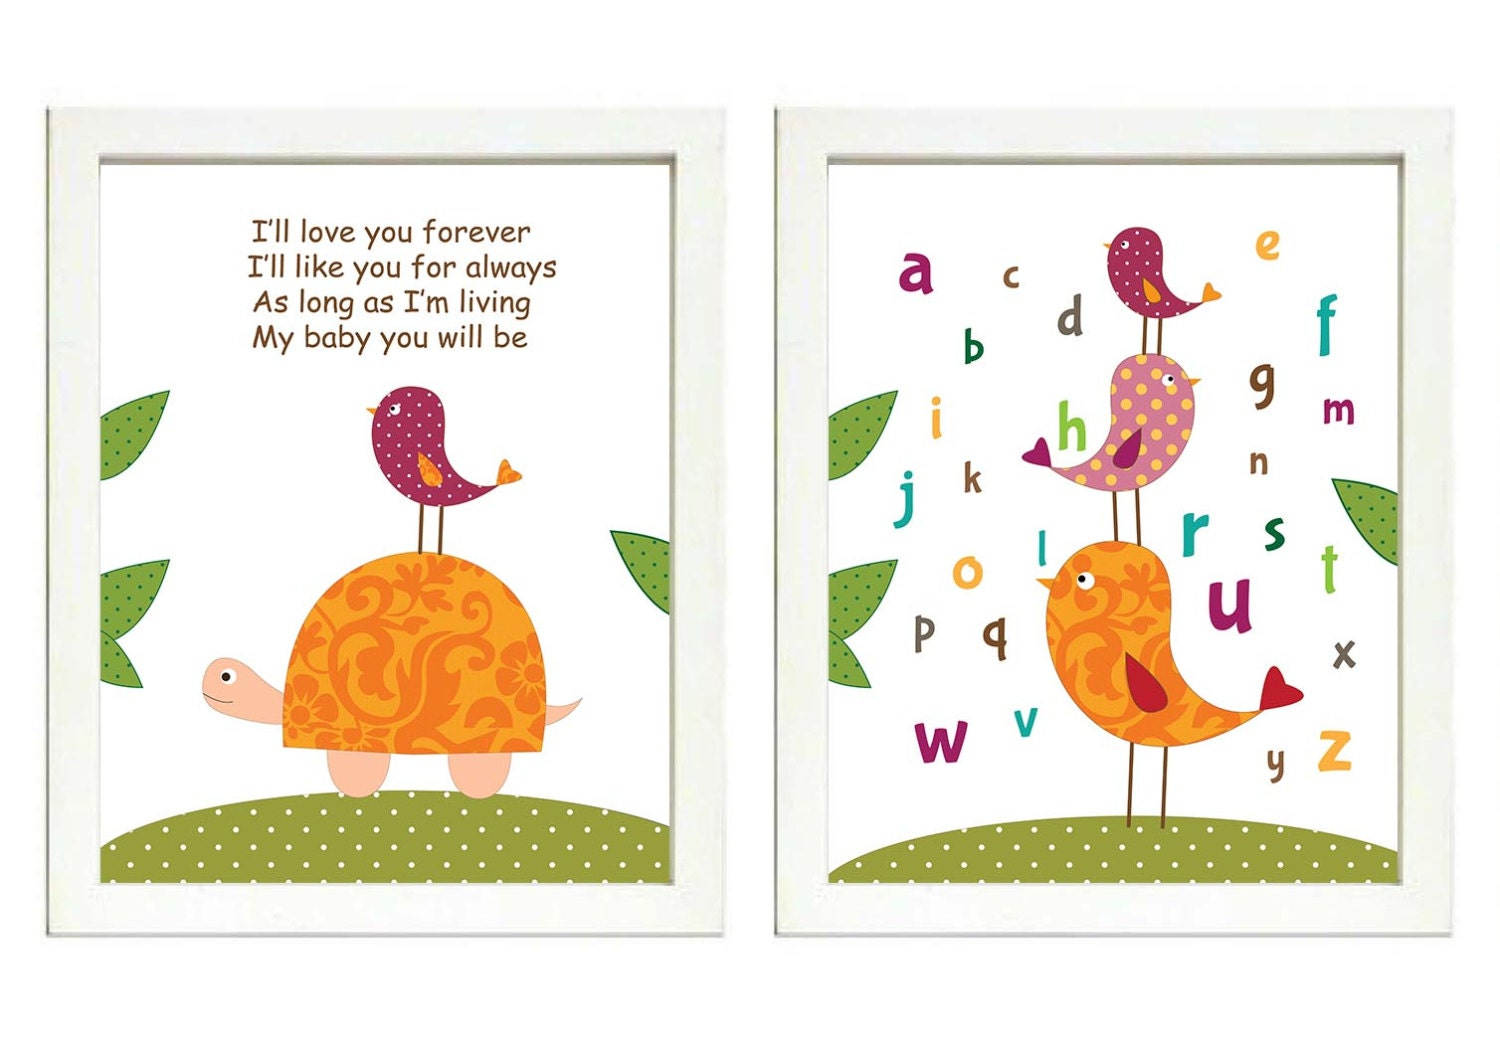 Pink Orange Green Nursery Art Print Set of 2 Bird Turtle ABC Alphabet Baby Child Kid Wall Decor Ill